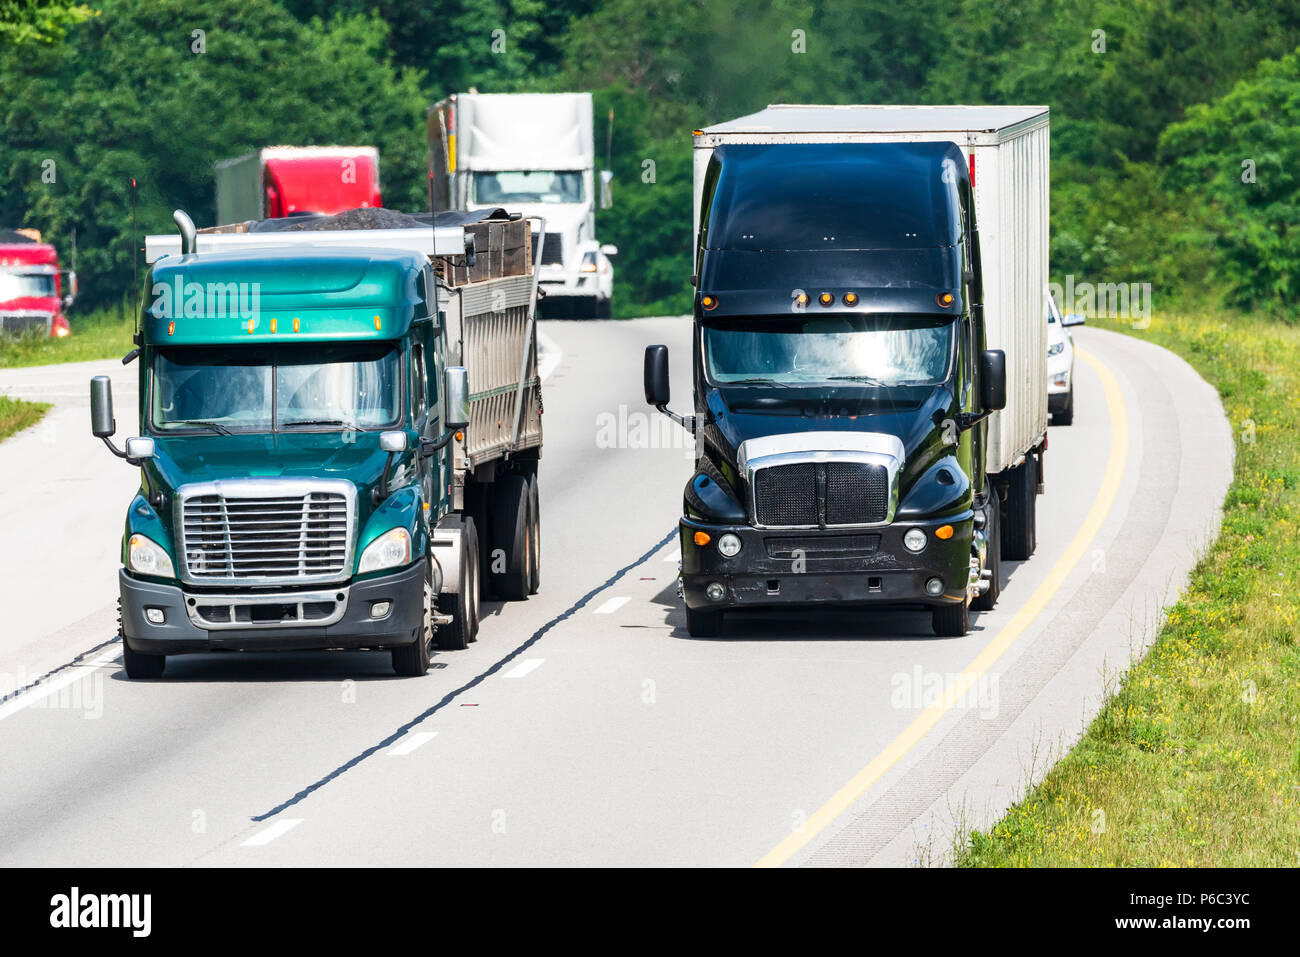 A line of semis travel a Tennessee interstate. Note: All logos and identifying marks have been removed from all vehicles.  Image was created on hot da - Stock Image